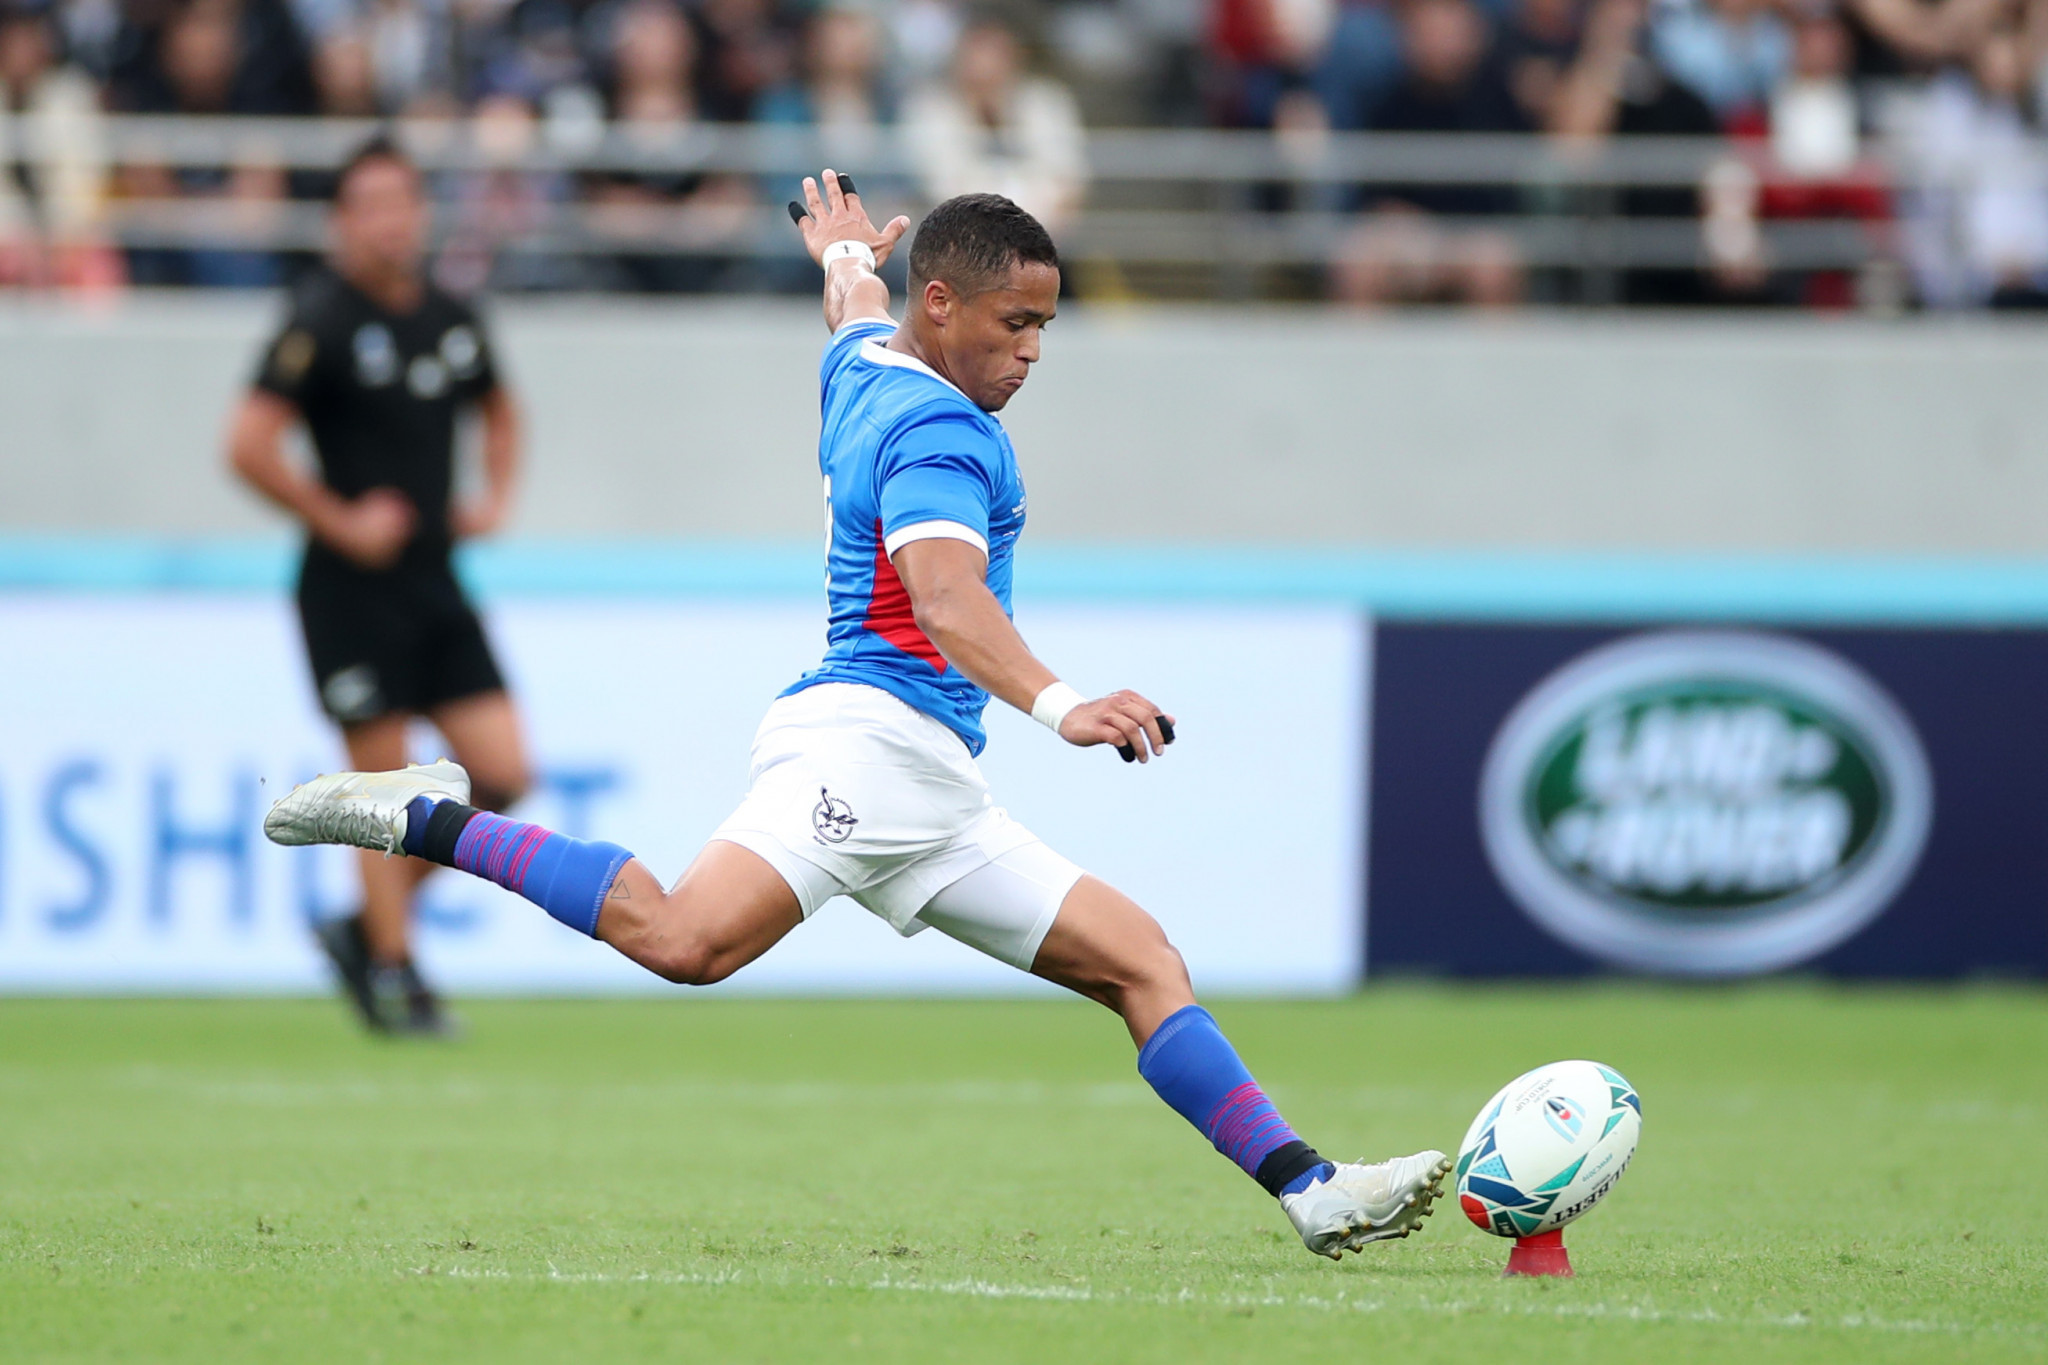 Damian Stevens kicked Namibia into a remarkable 3-0 lead against New Zealand  ©Getty Images